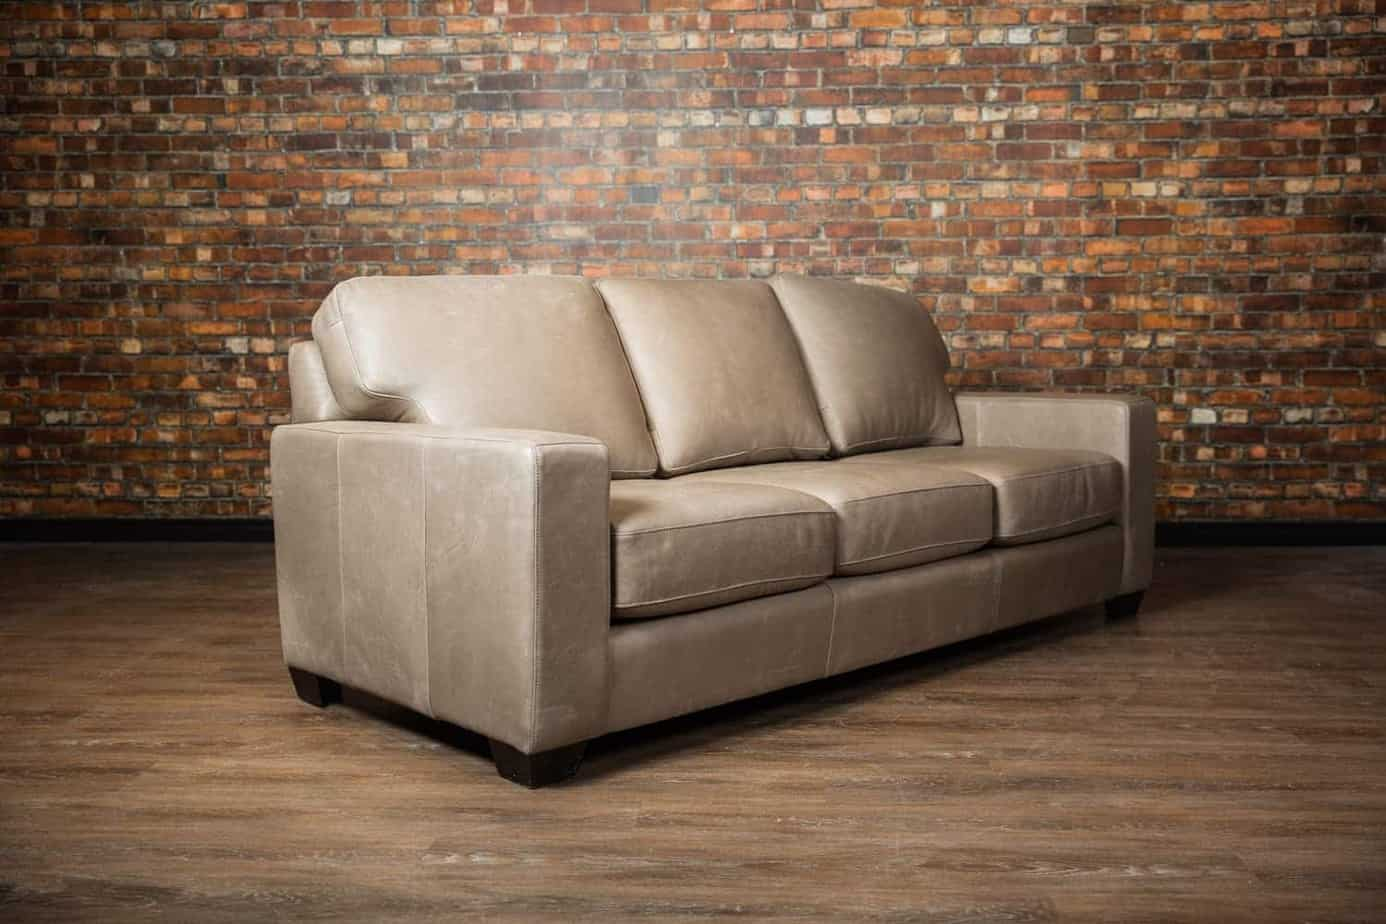 The mesa leather sofa bed collection canada39s boss for Leather sectional sofa bed canada